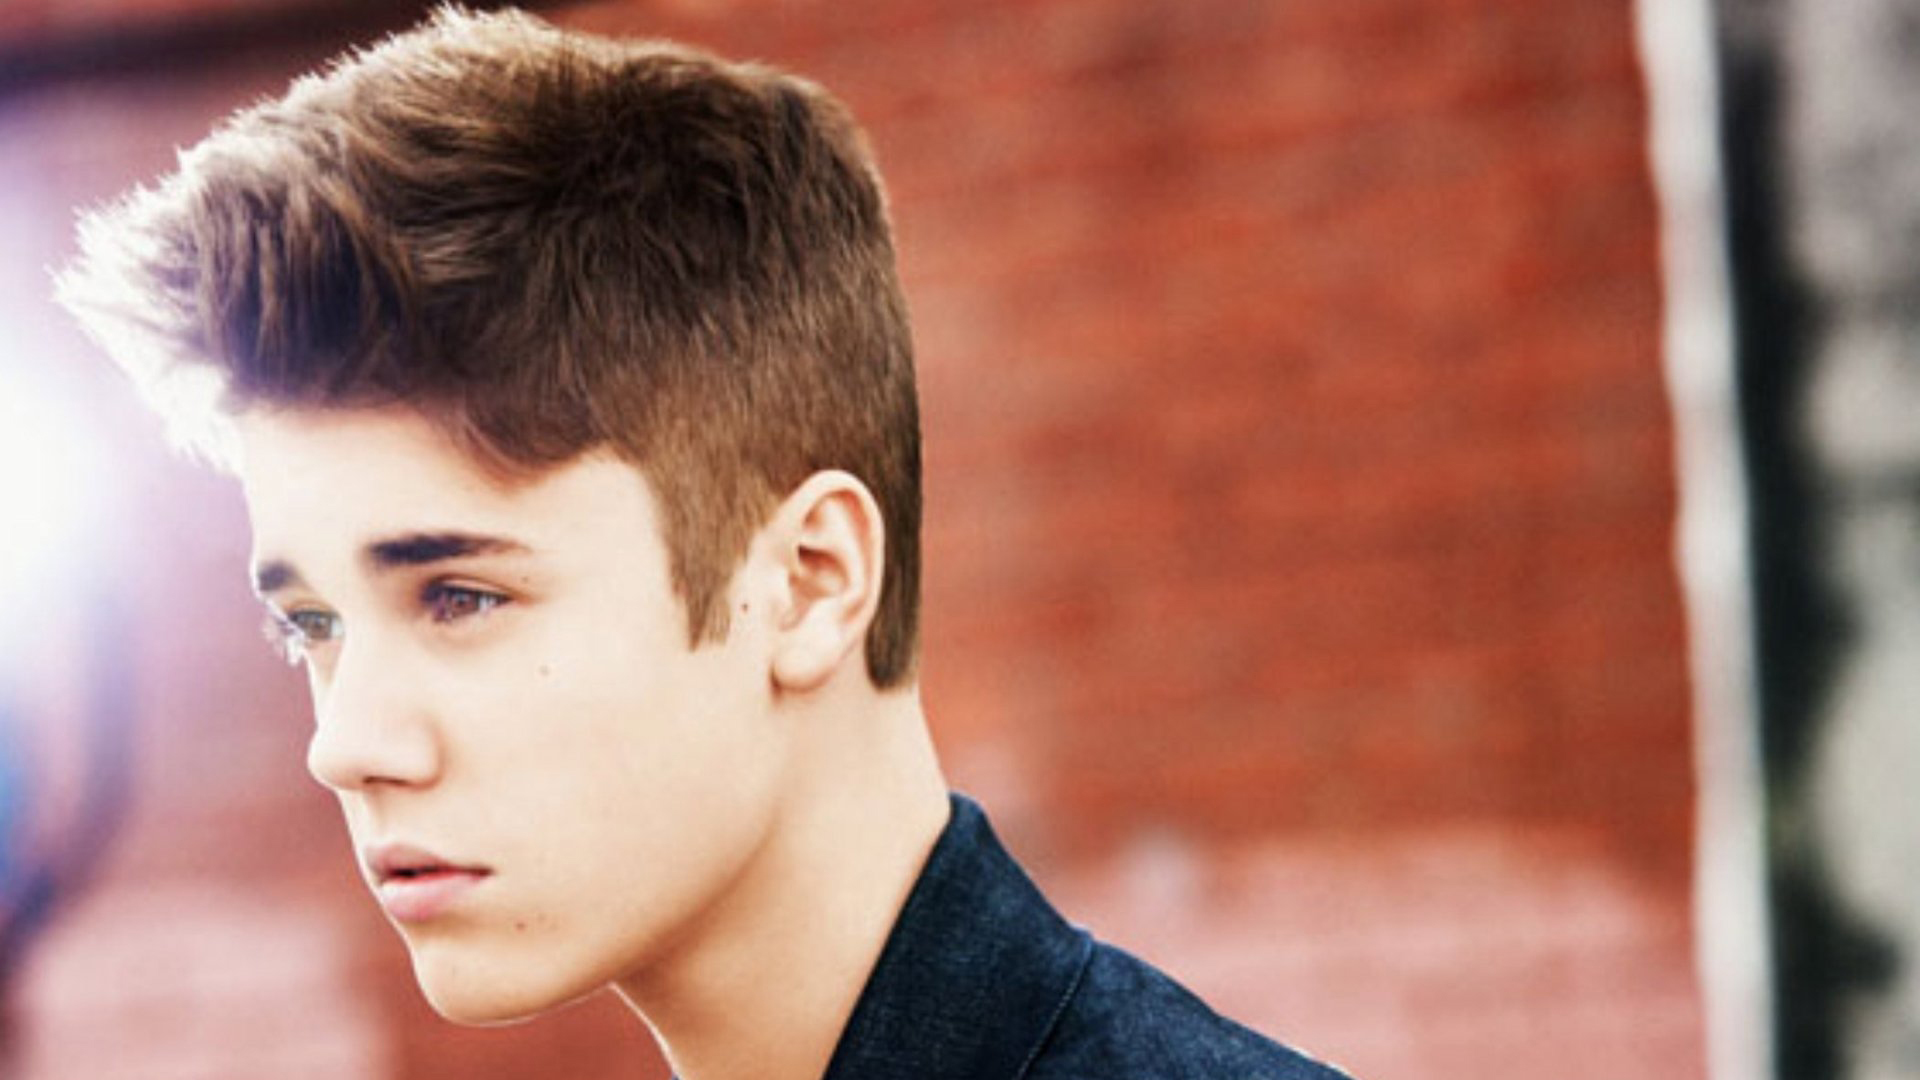 Justin Biber Photo Dwnld: Justin Bieber Wallpapers Images Photos Pictures Backgrounds